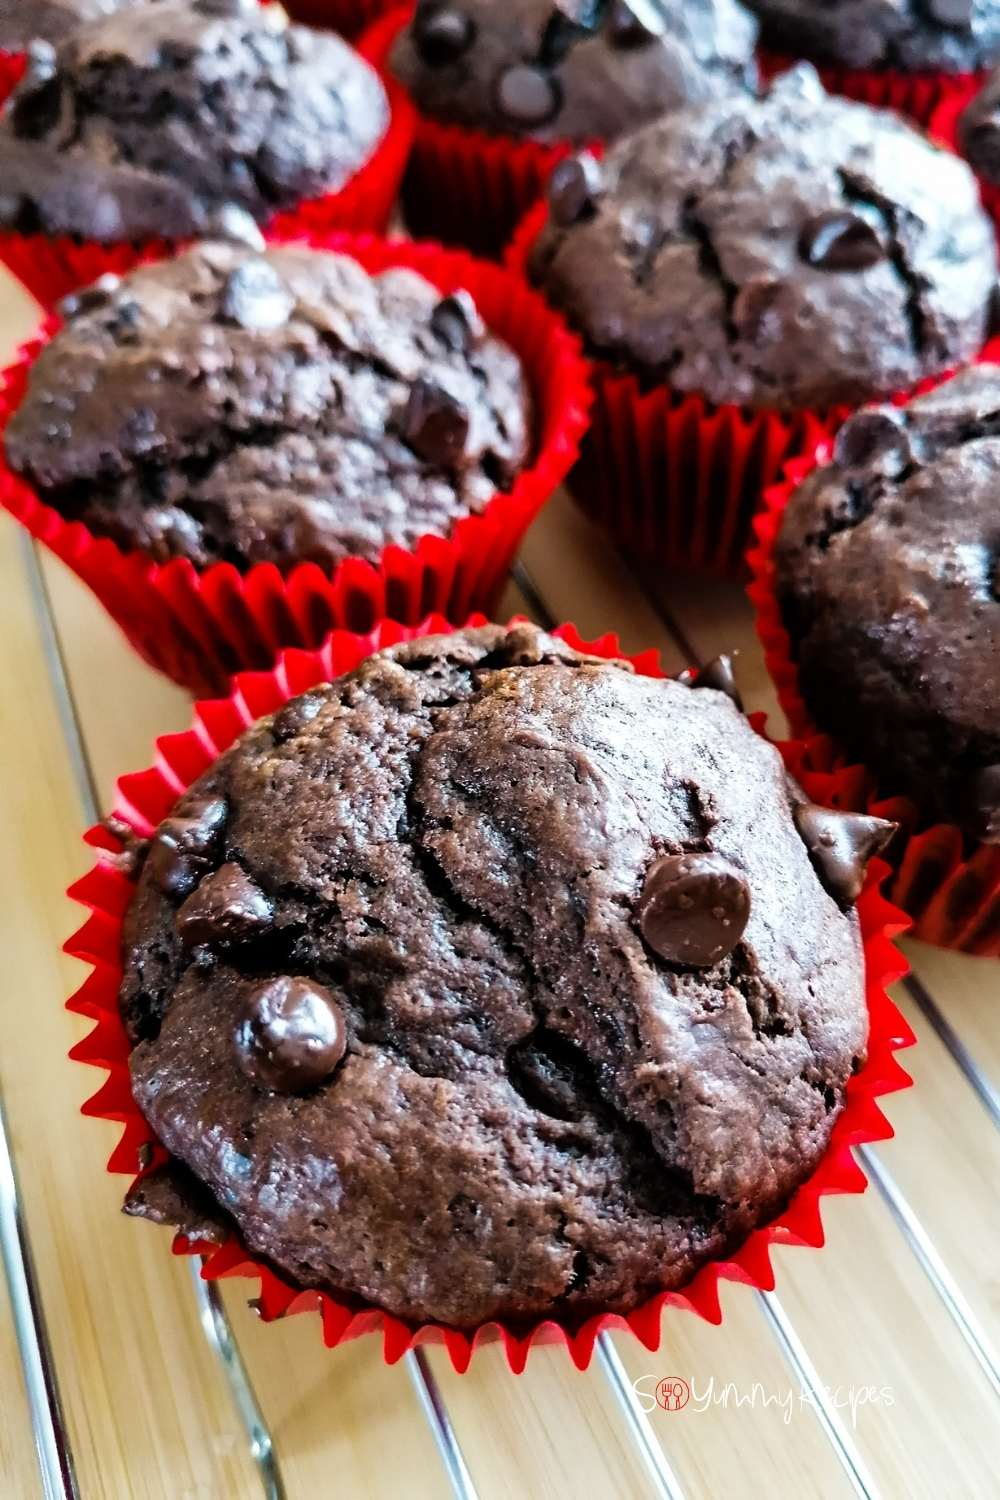 Double chocolate muffins in red paper muffin cases on a wire cooling rack.